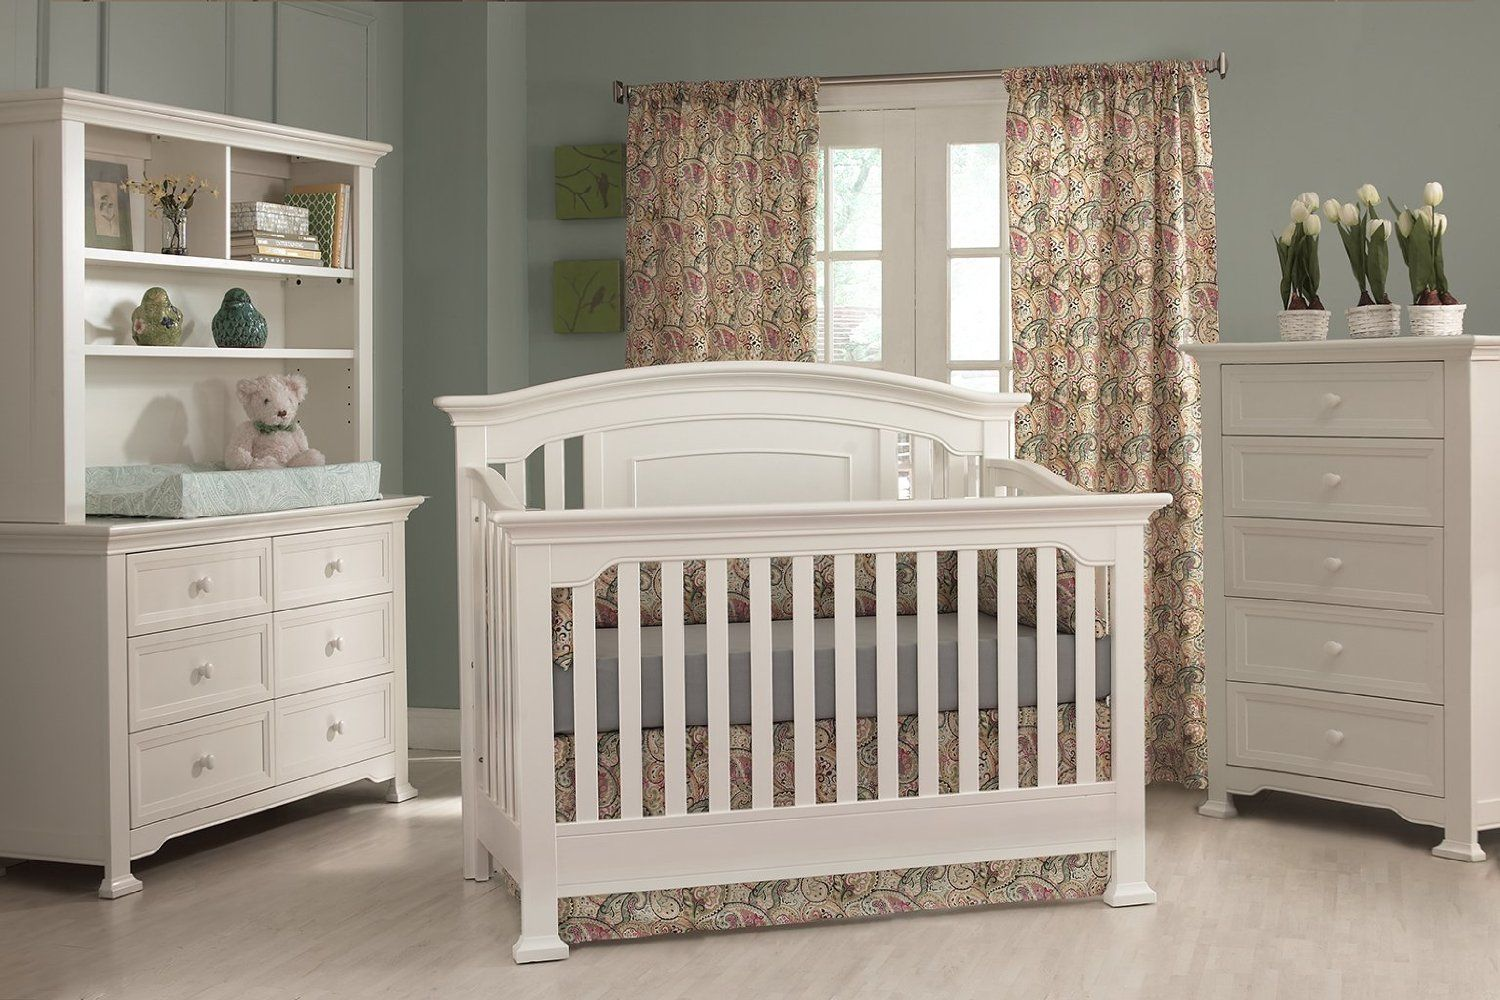 Medford Crib From Munire Baby Furniture